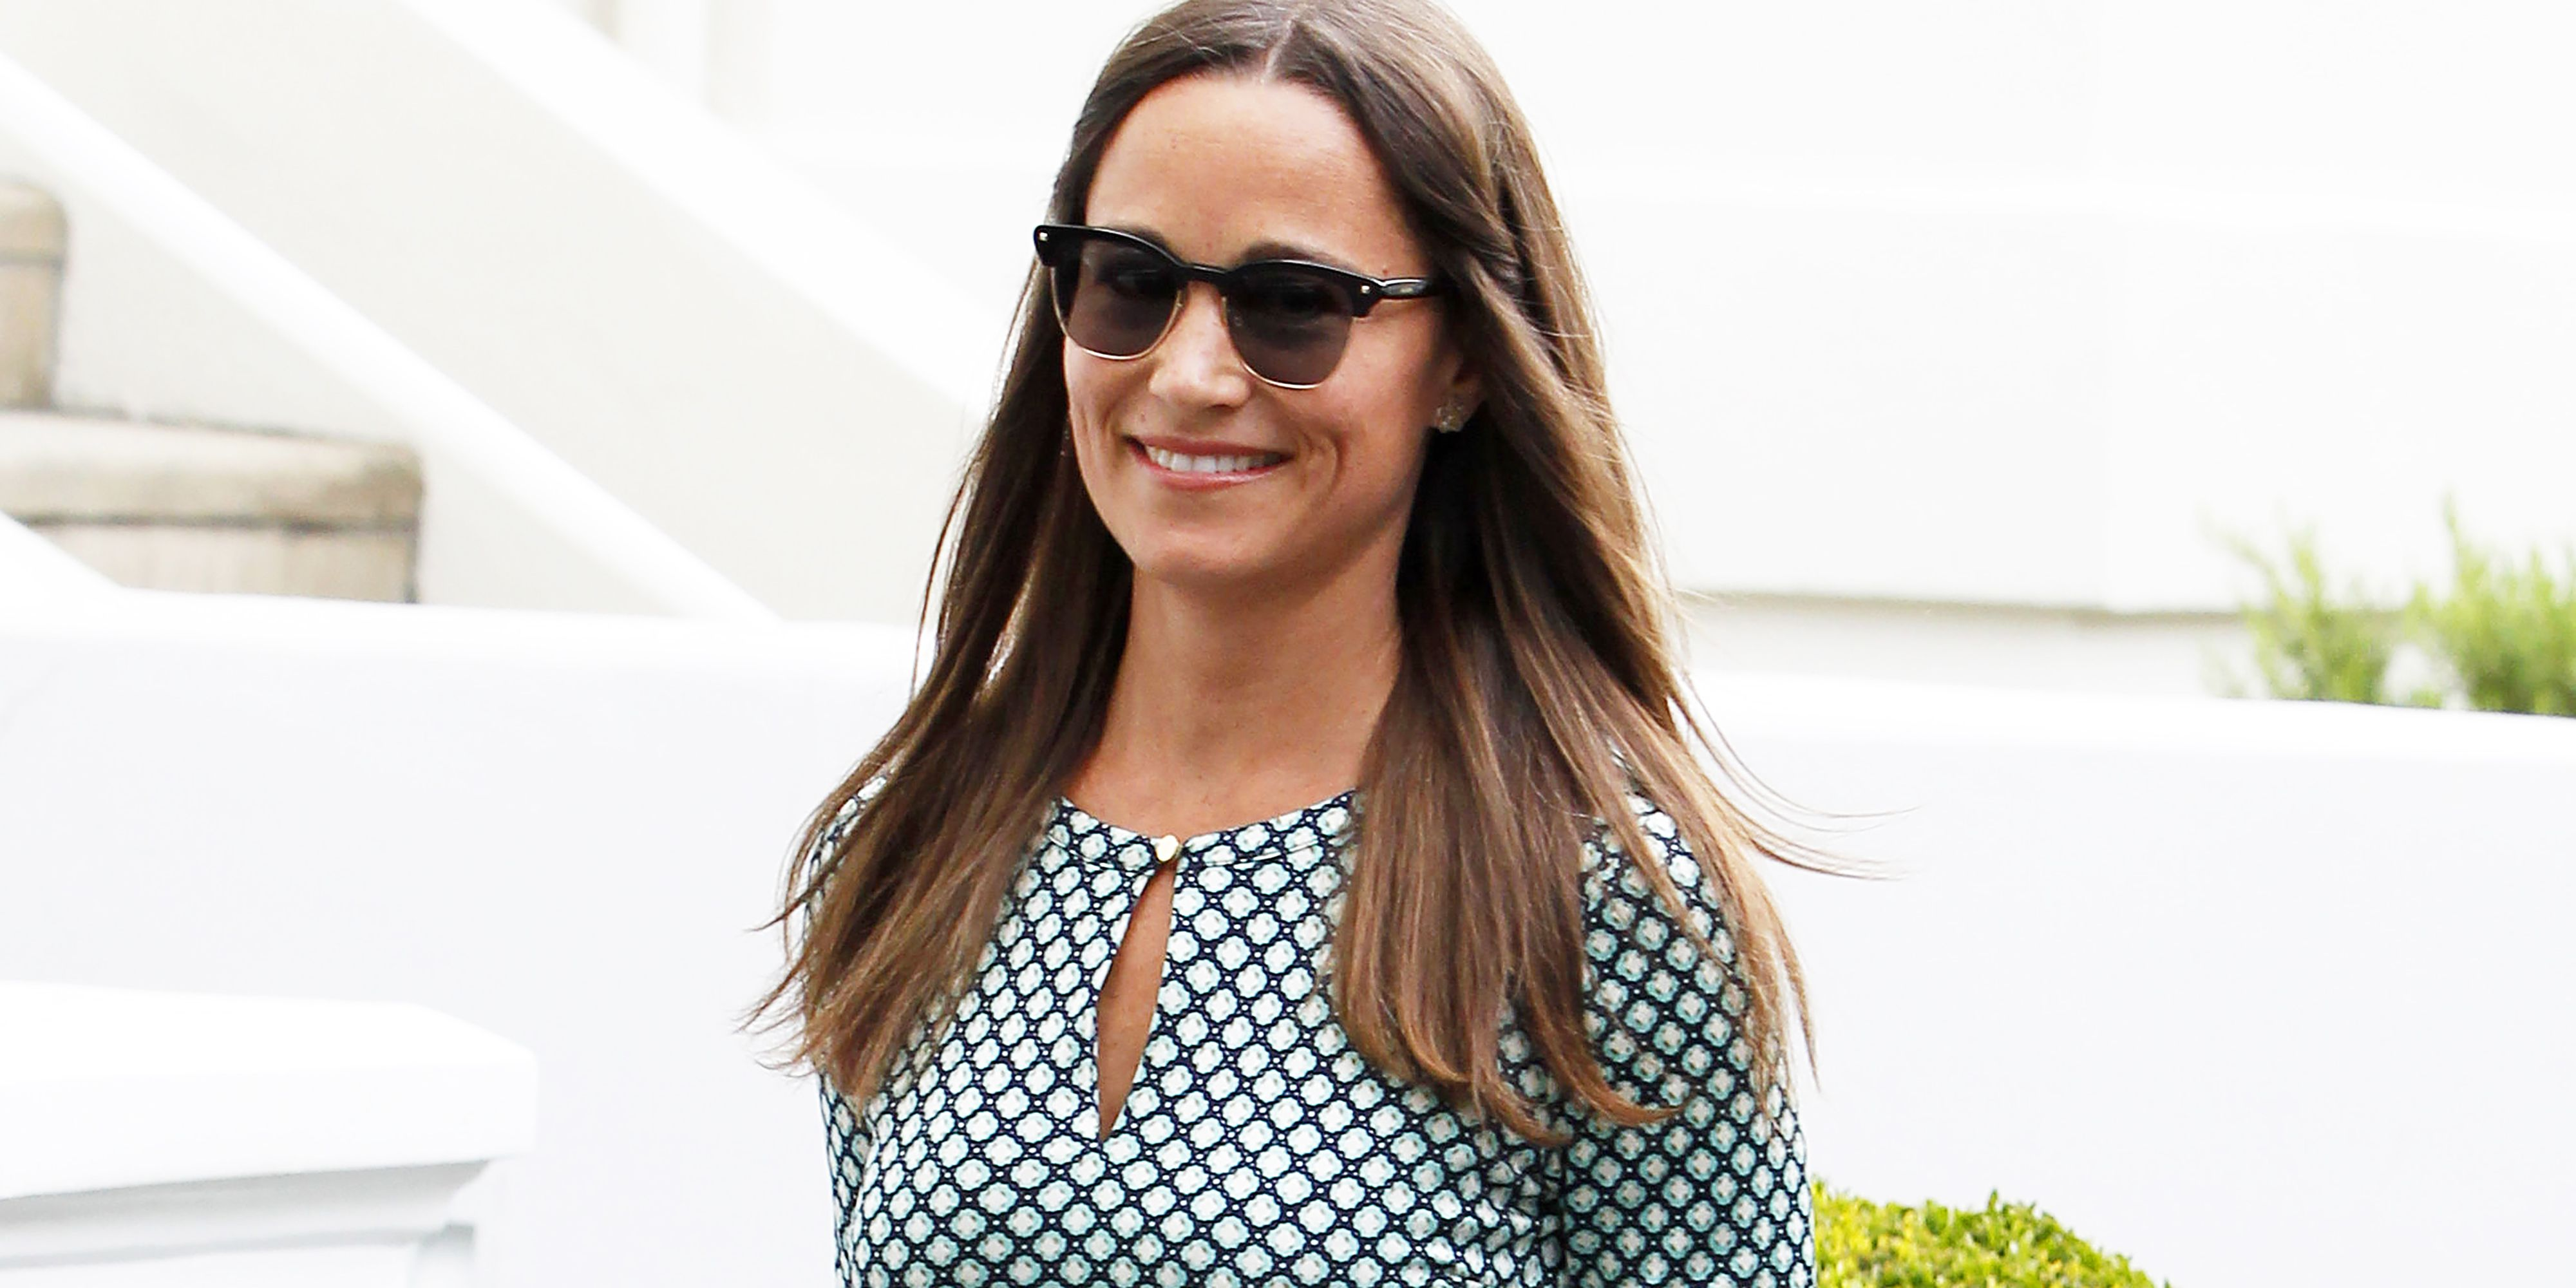 cf632b5f7f1 5 Shoe Brands Pippa Middleton Can t Stop Wearing—and Where to Shop Them